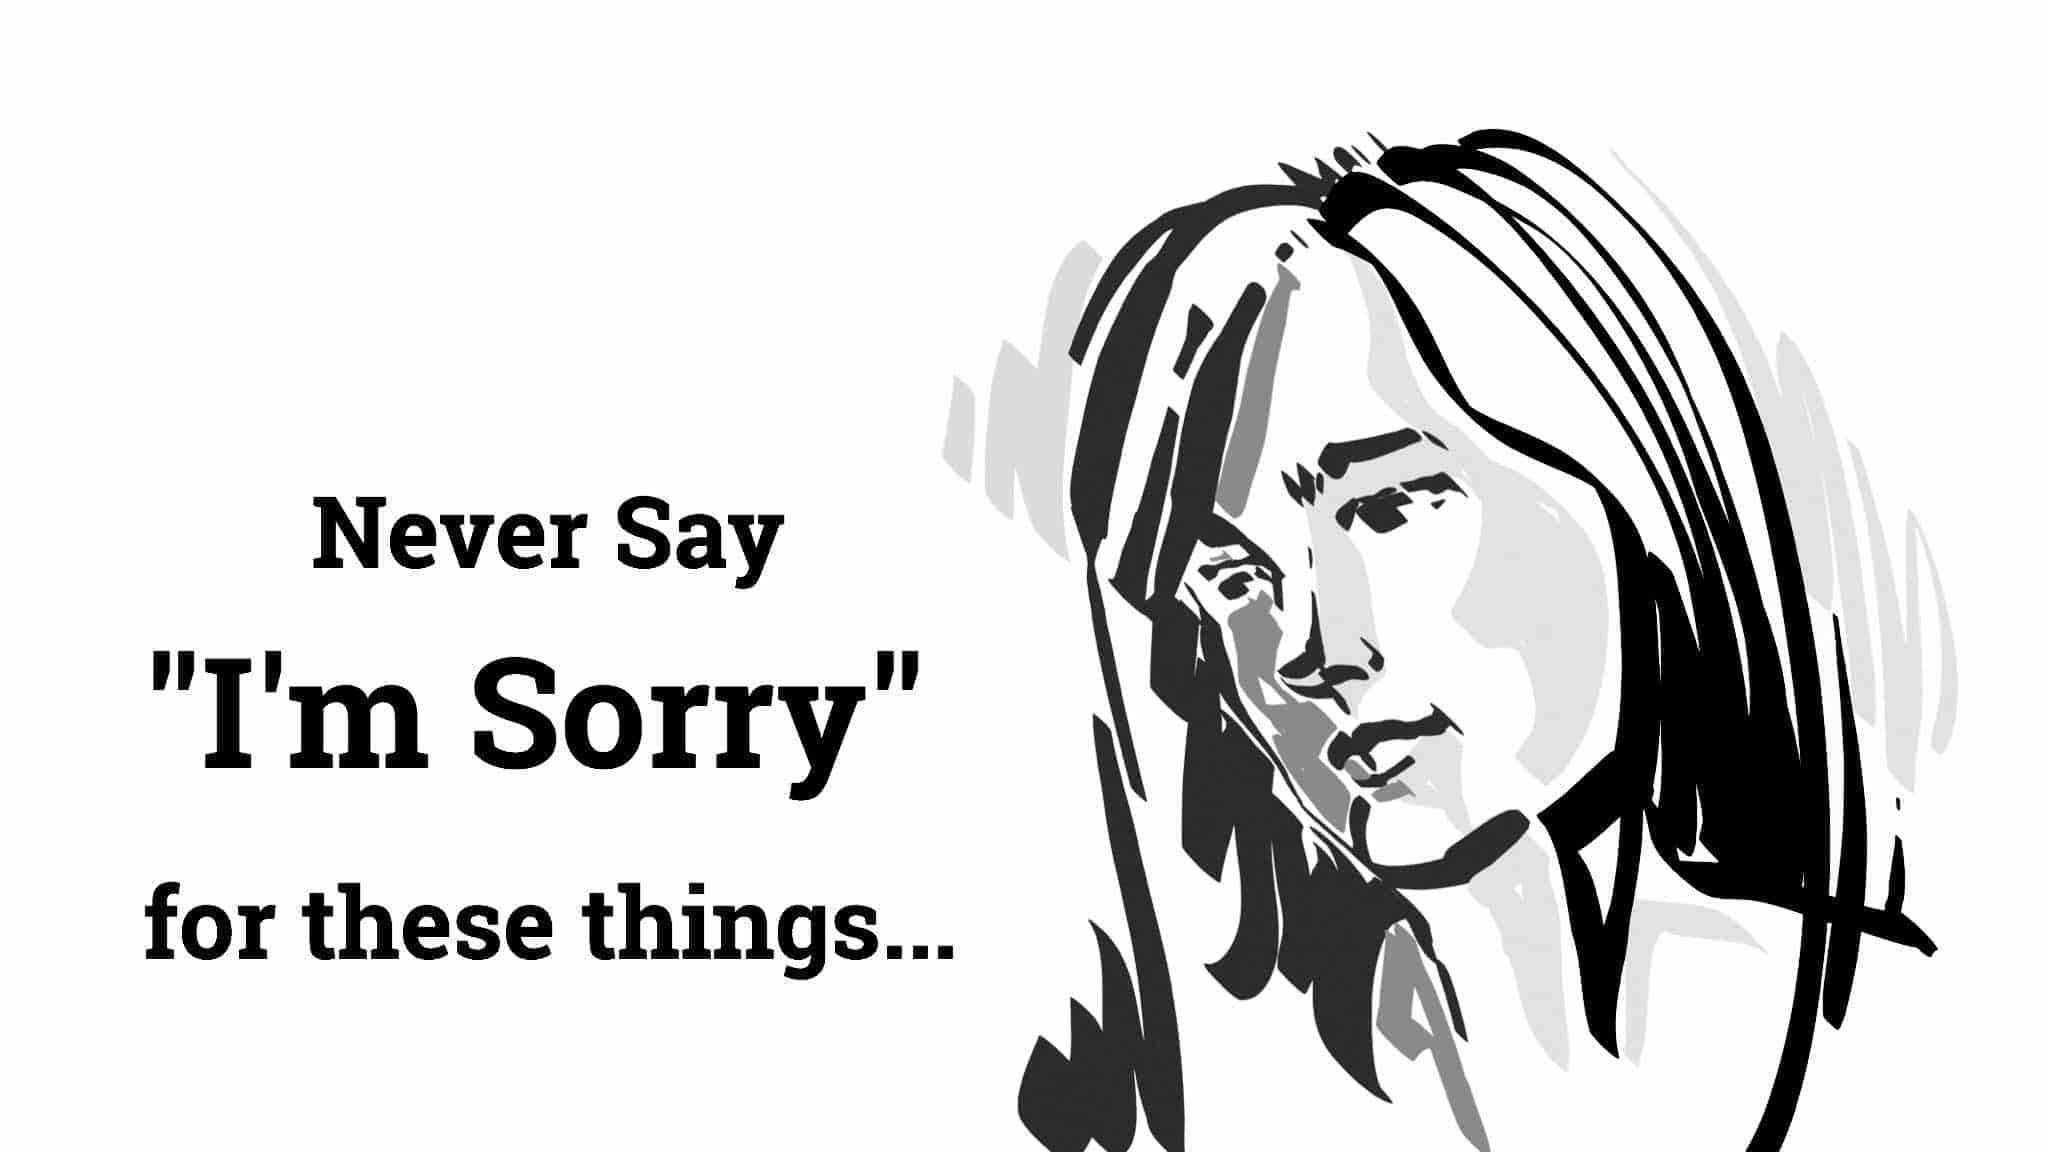 12 things to never say im sorry for 12 things to never say im sorry for altavistaventures Choice Image